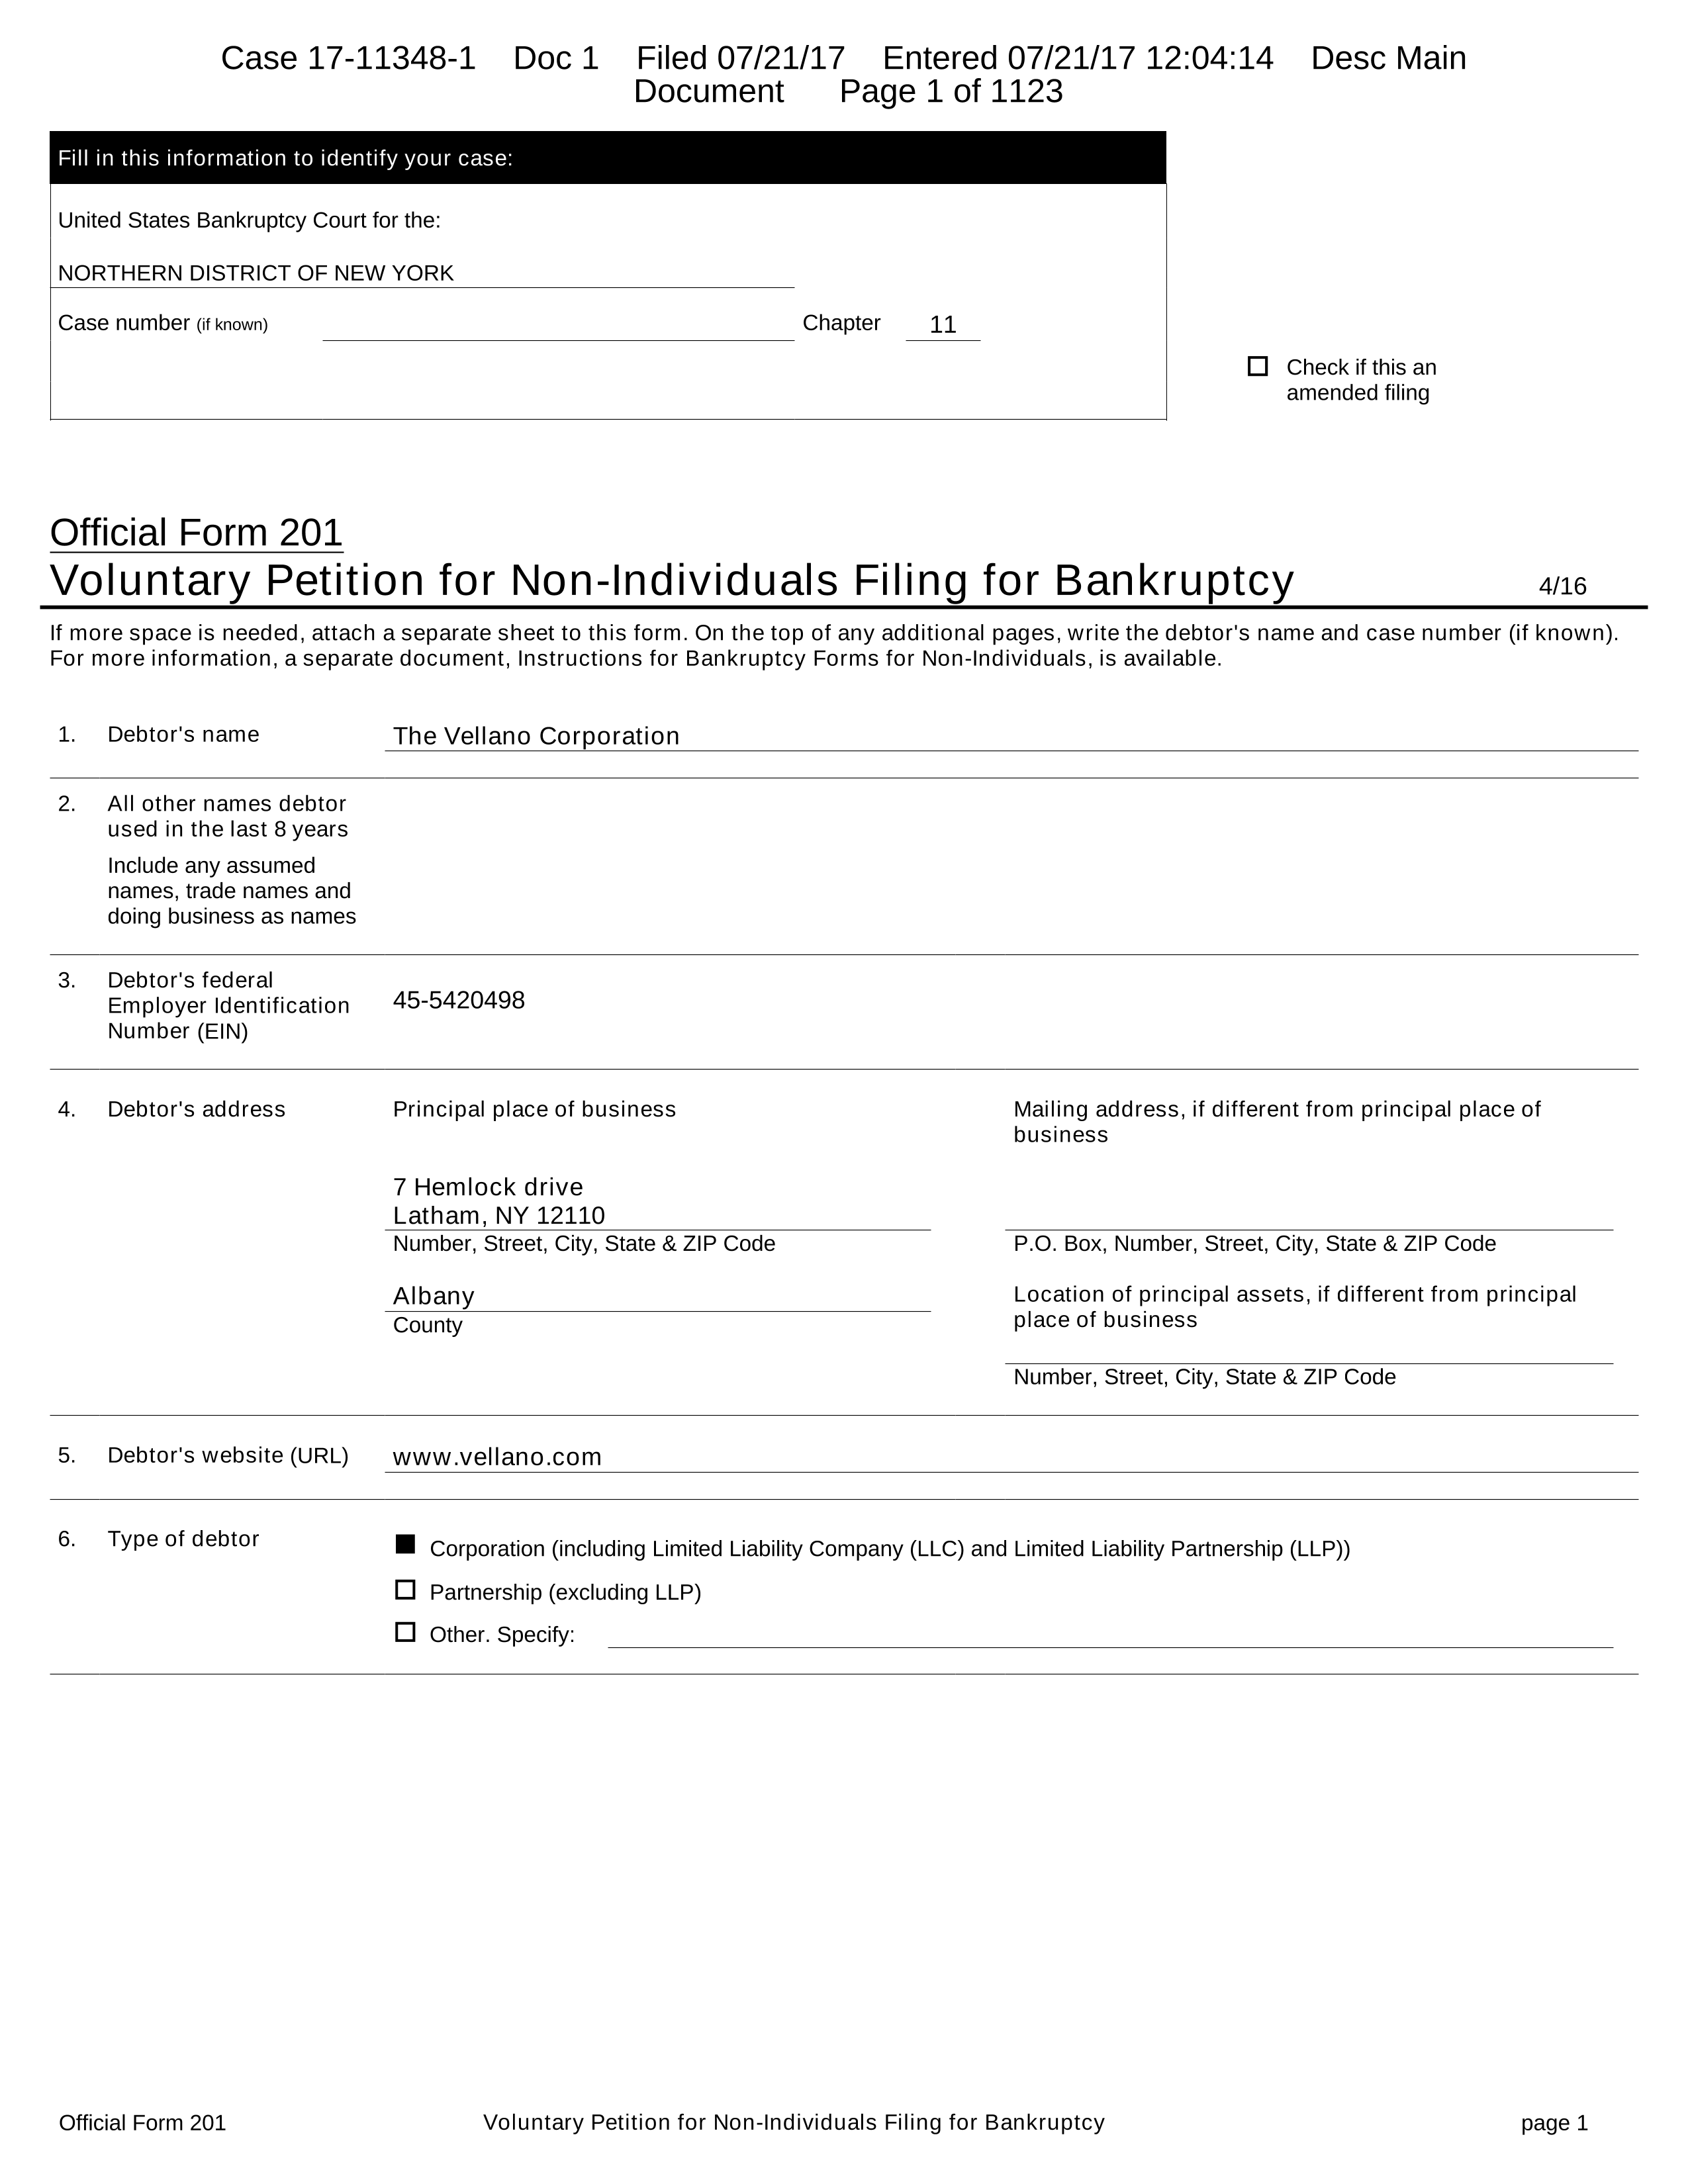 United States Bankruptcy Court for the NORTHERN DISTRICT OF NEW YORK Case number if known Chapter 11 † Check if this an amended filing ficial Form 201